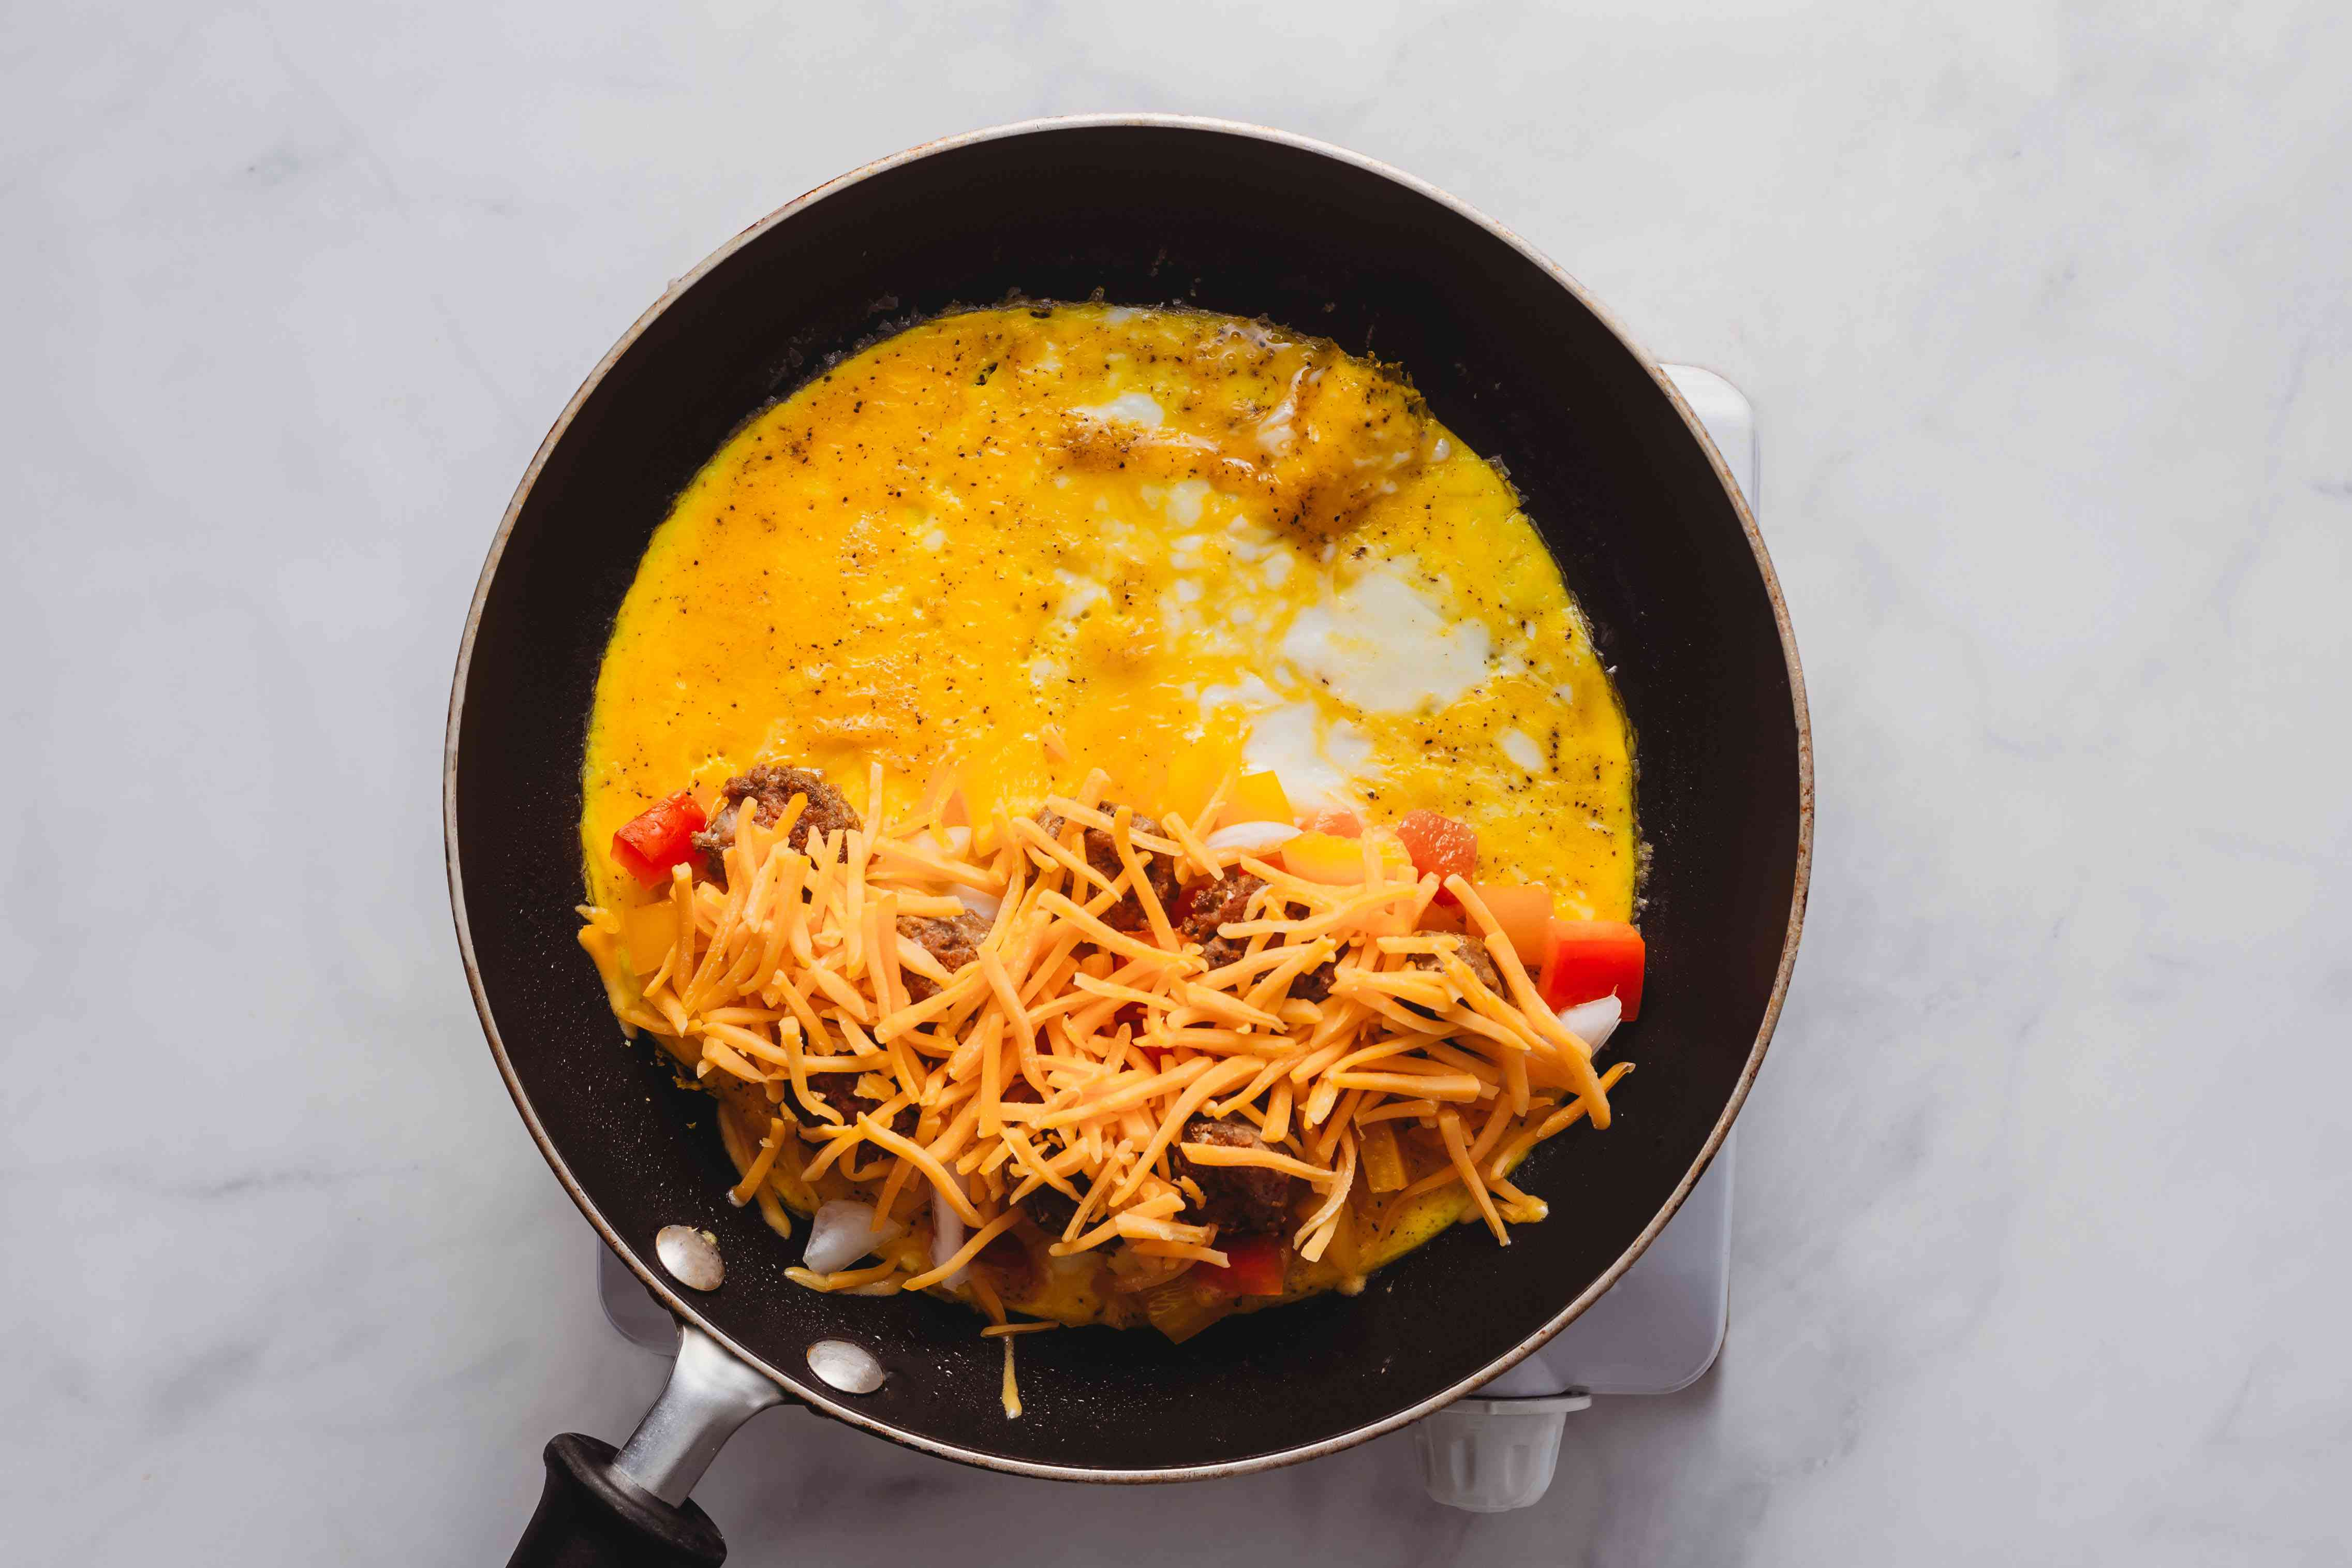 cheese on top of the omelet in the skillet